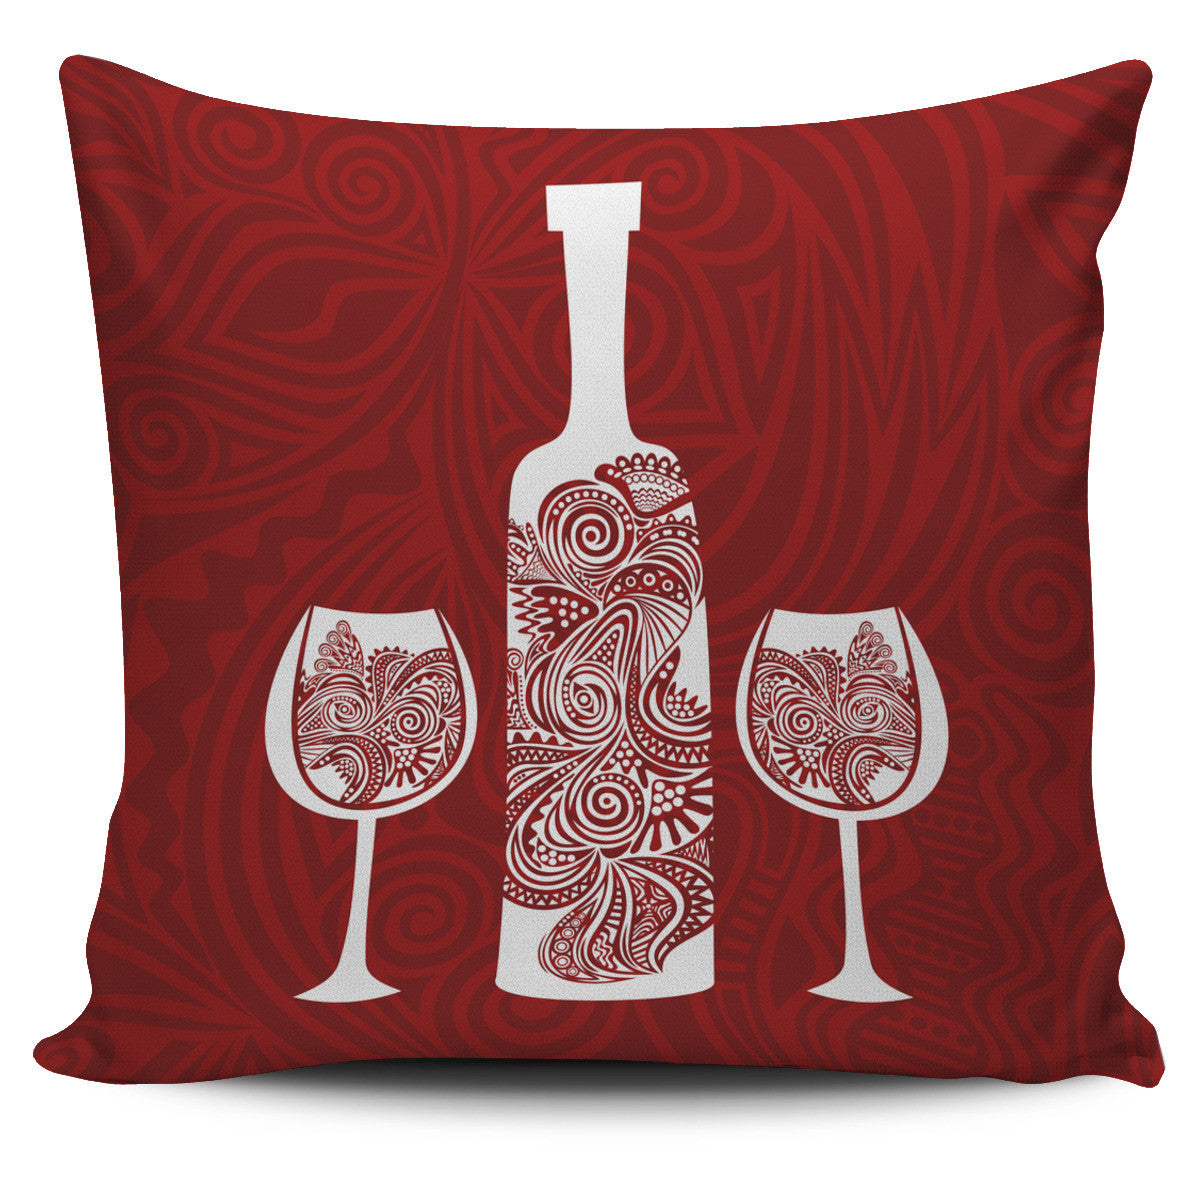 Wine Series Pillow Cover Offer